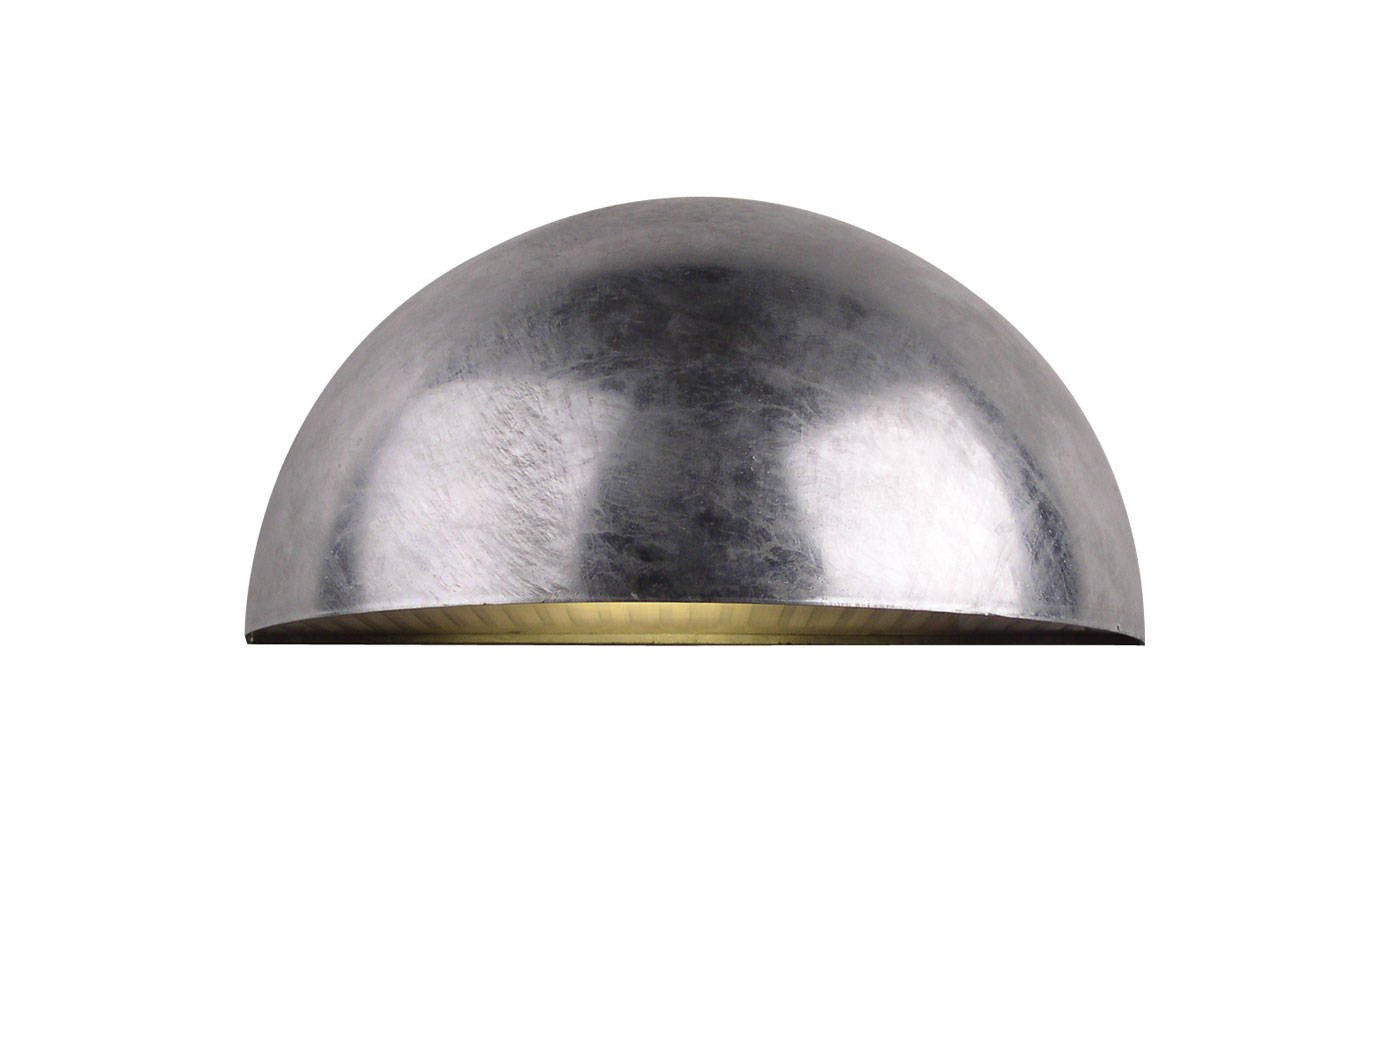 galvanized lighting. Nordlux Bowler 28601131 Galvanized Wall Light-Nordlux-DC Lighting Ltd Galvanized Lighting G